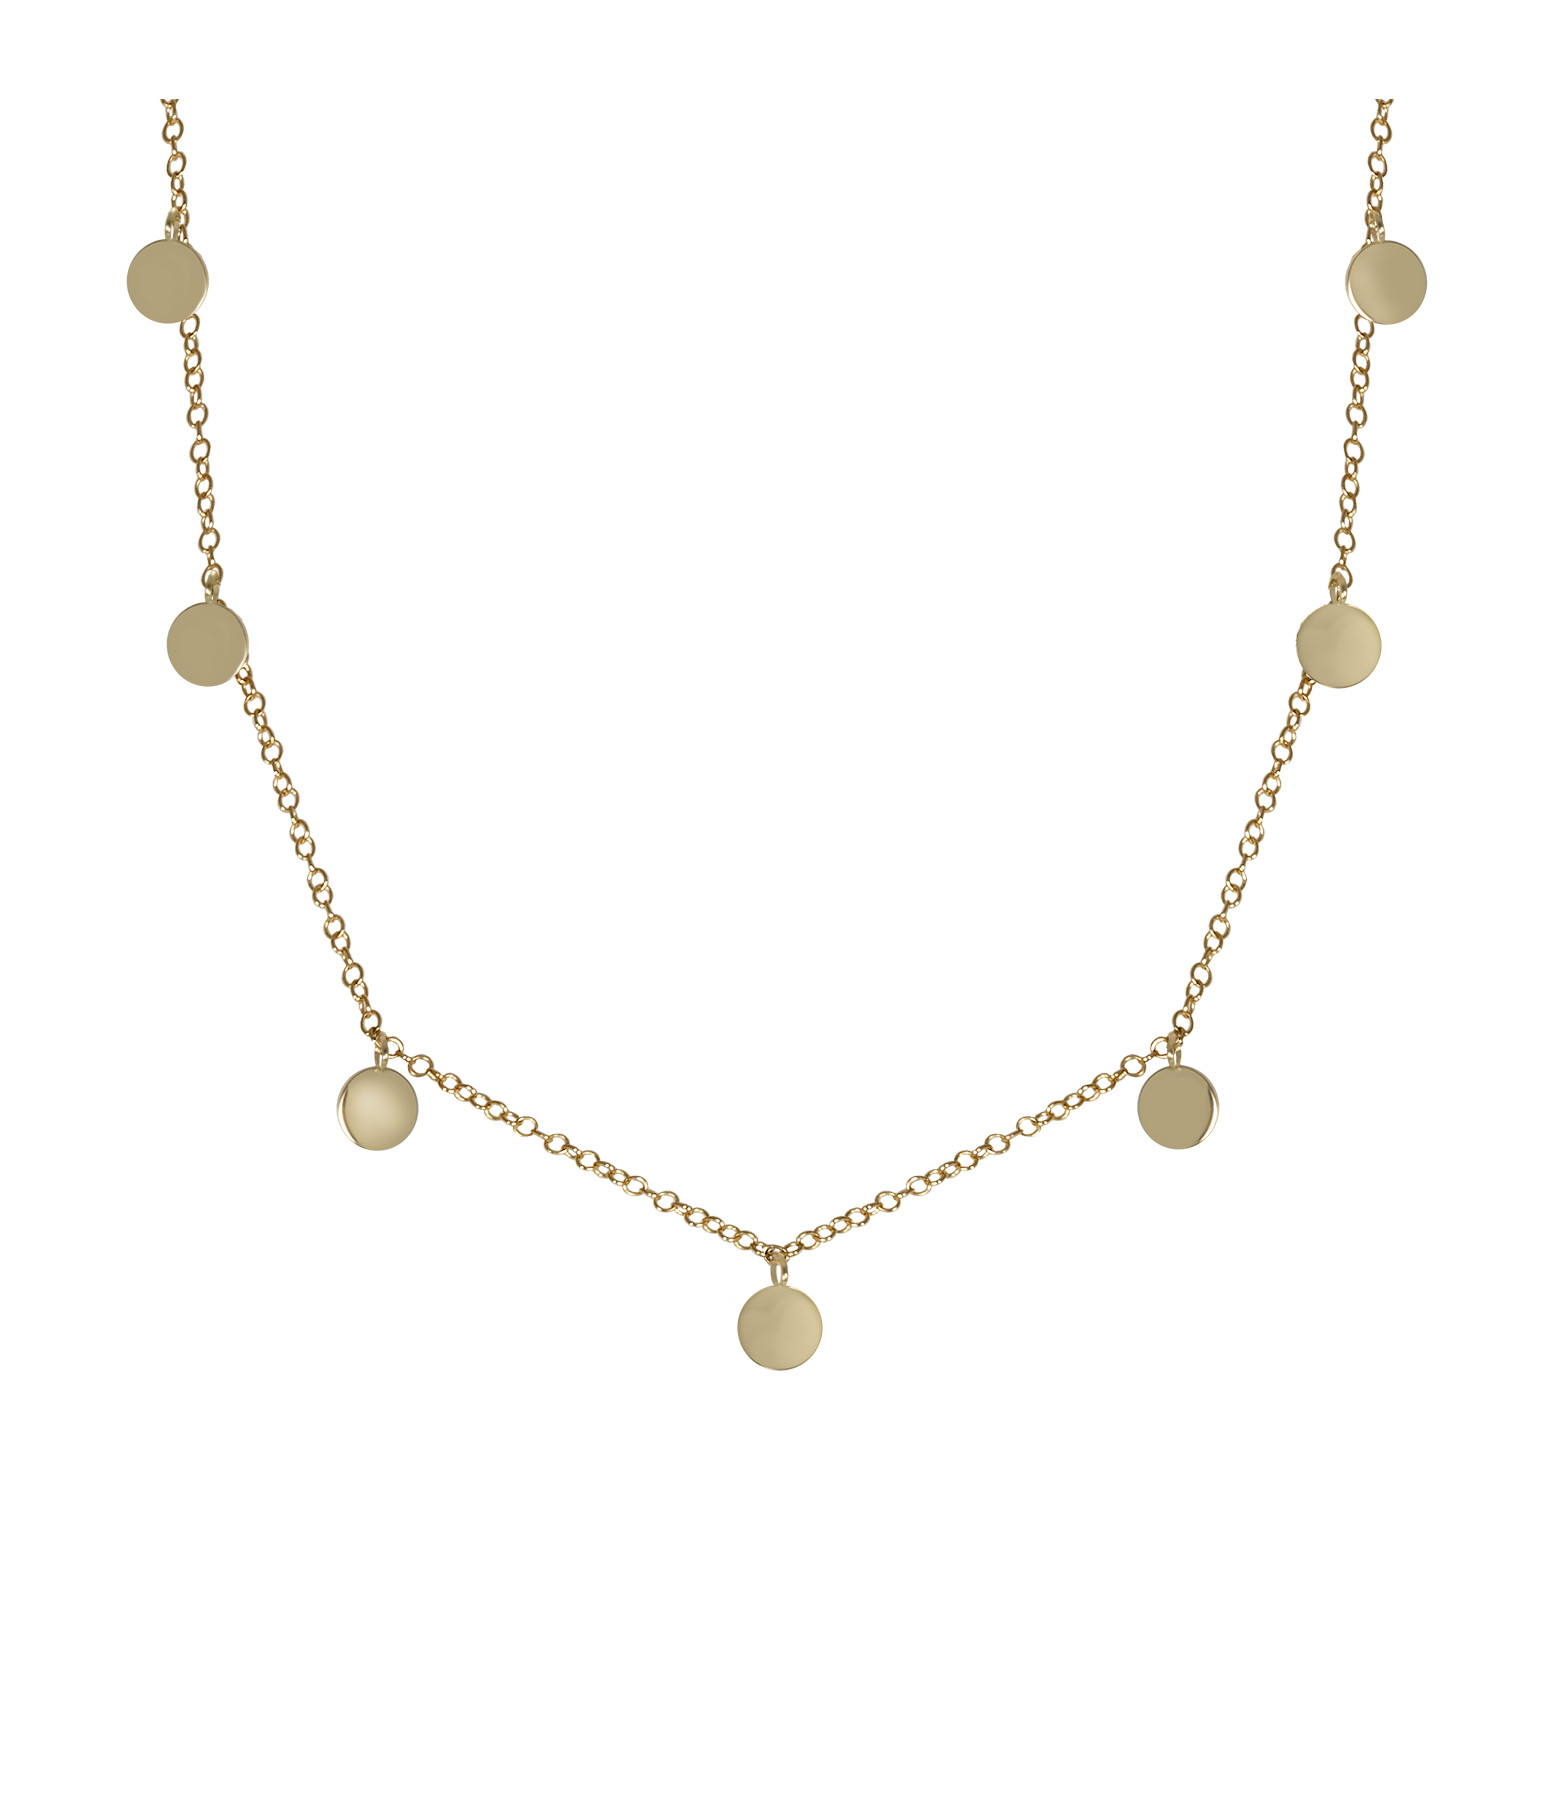 AND...PARIS - Collier Gypsy Mini 7 Pampilles Or